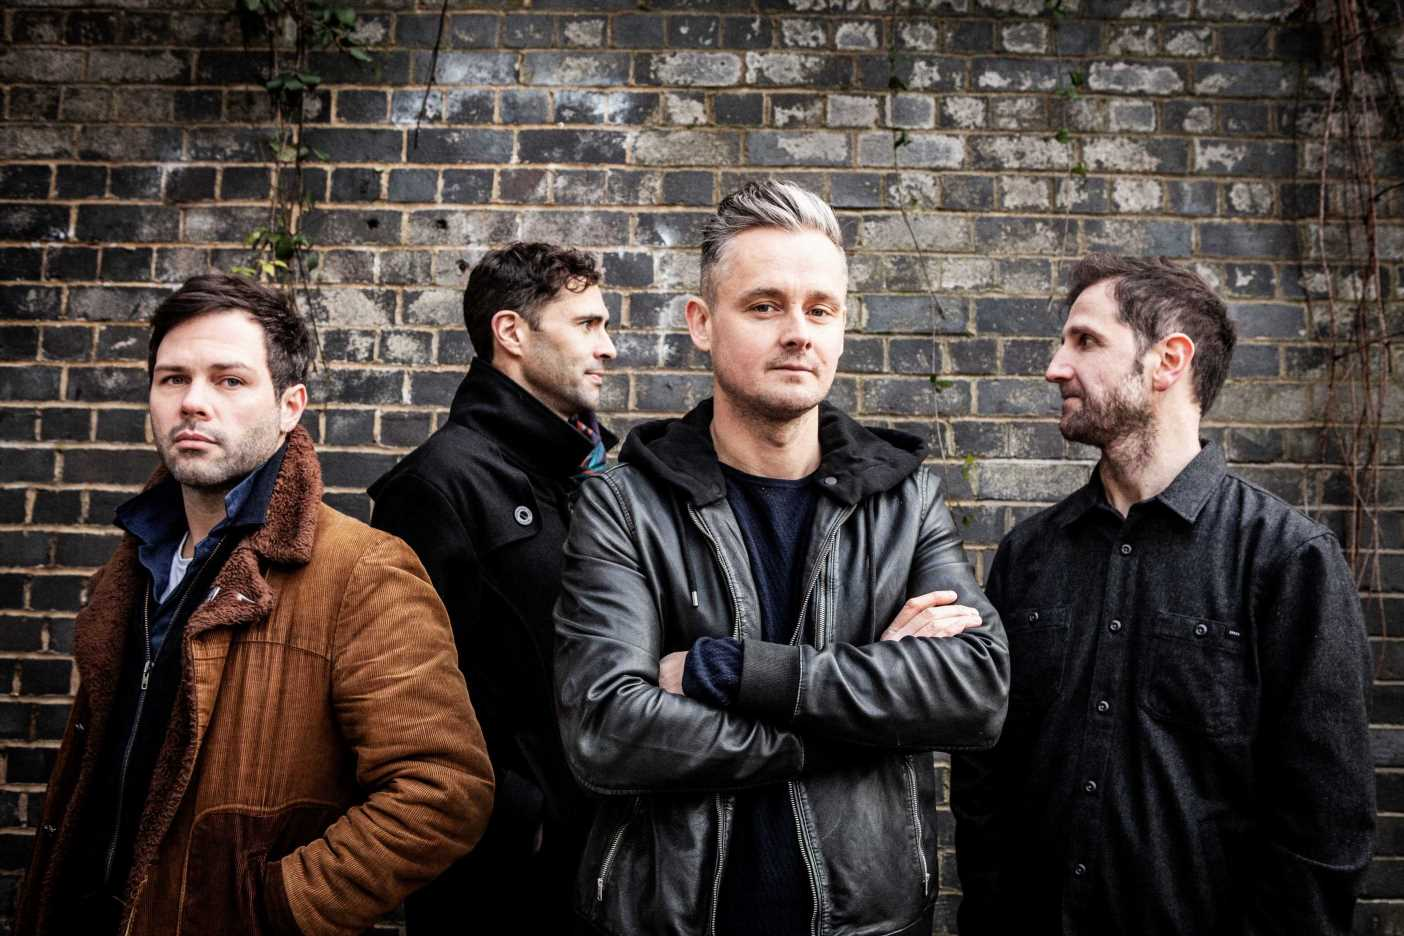 Keane open up about being torn apart by internal frictions and drug problems as they make their comeback – The Sun